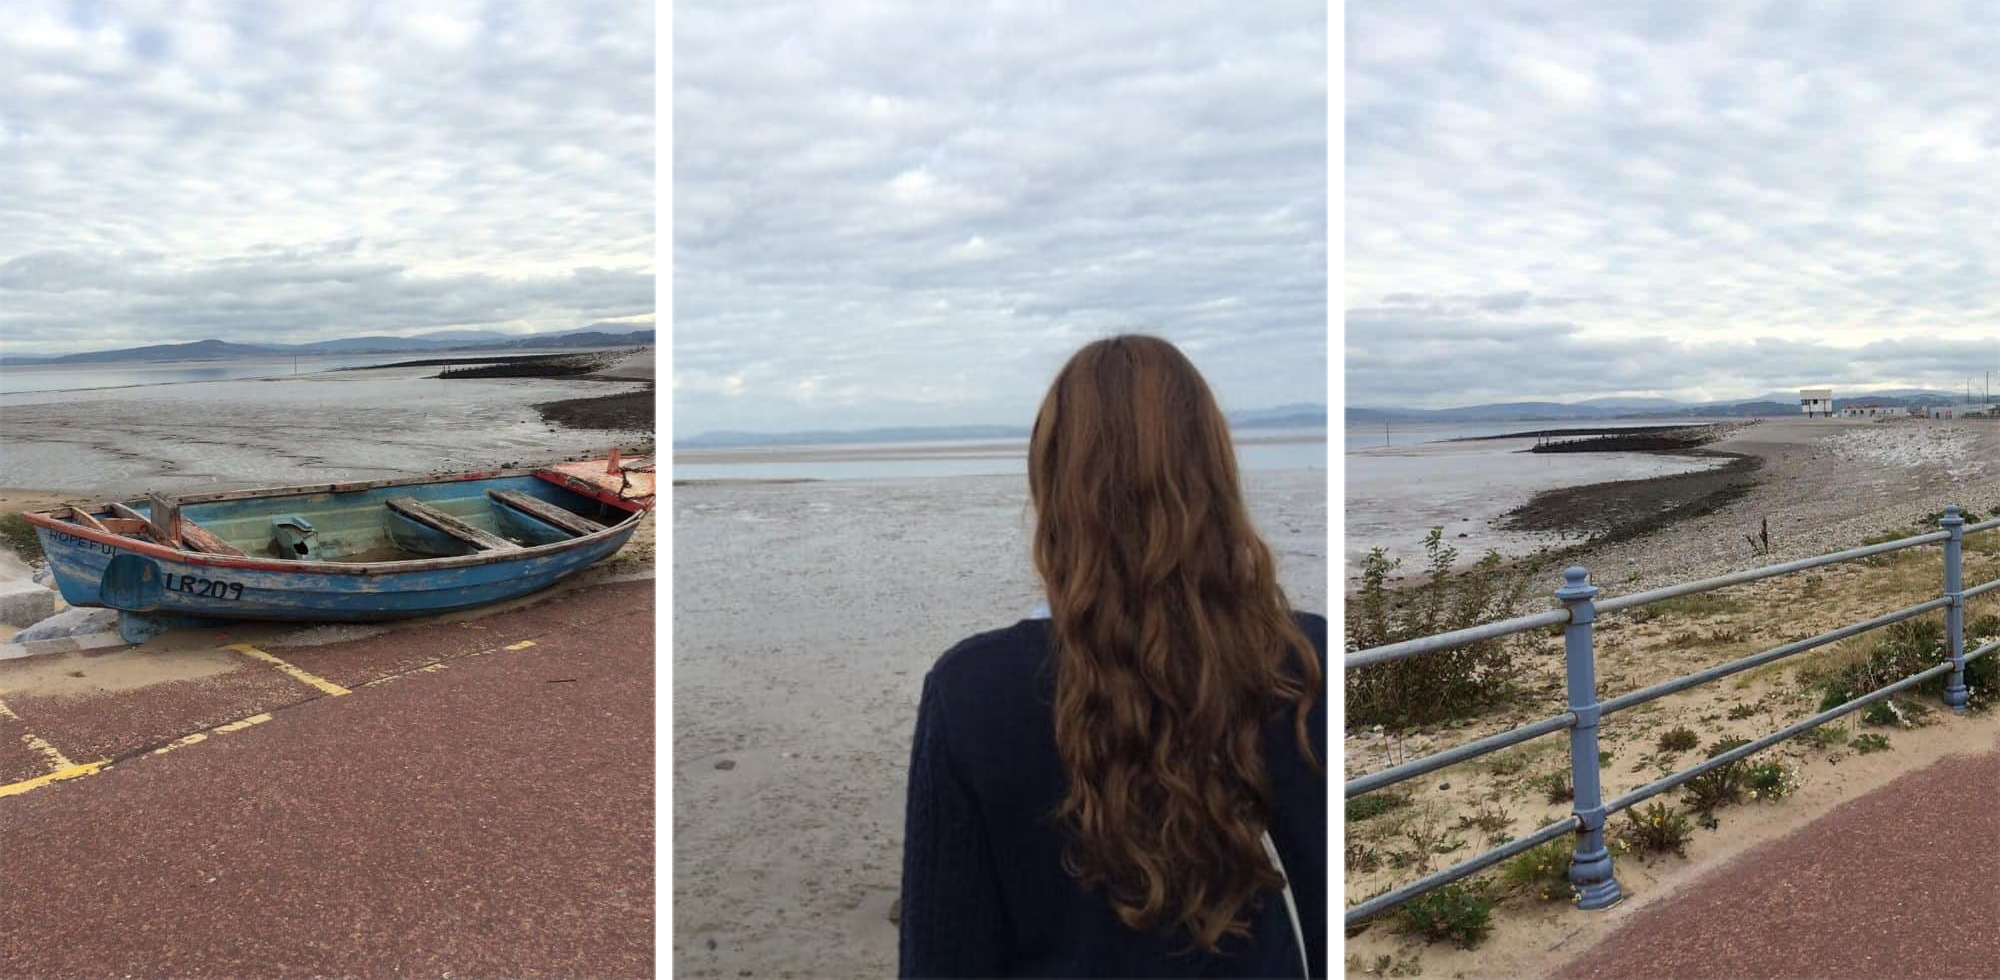 Exploring Morecambe Bay